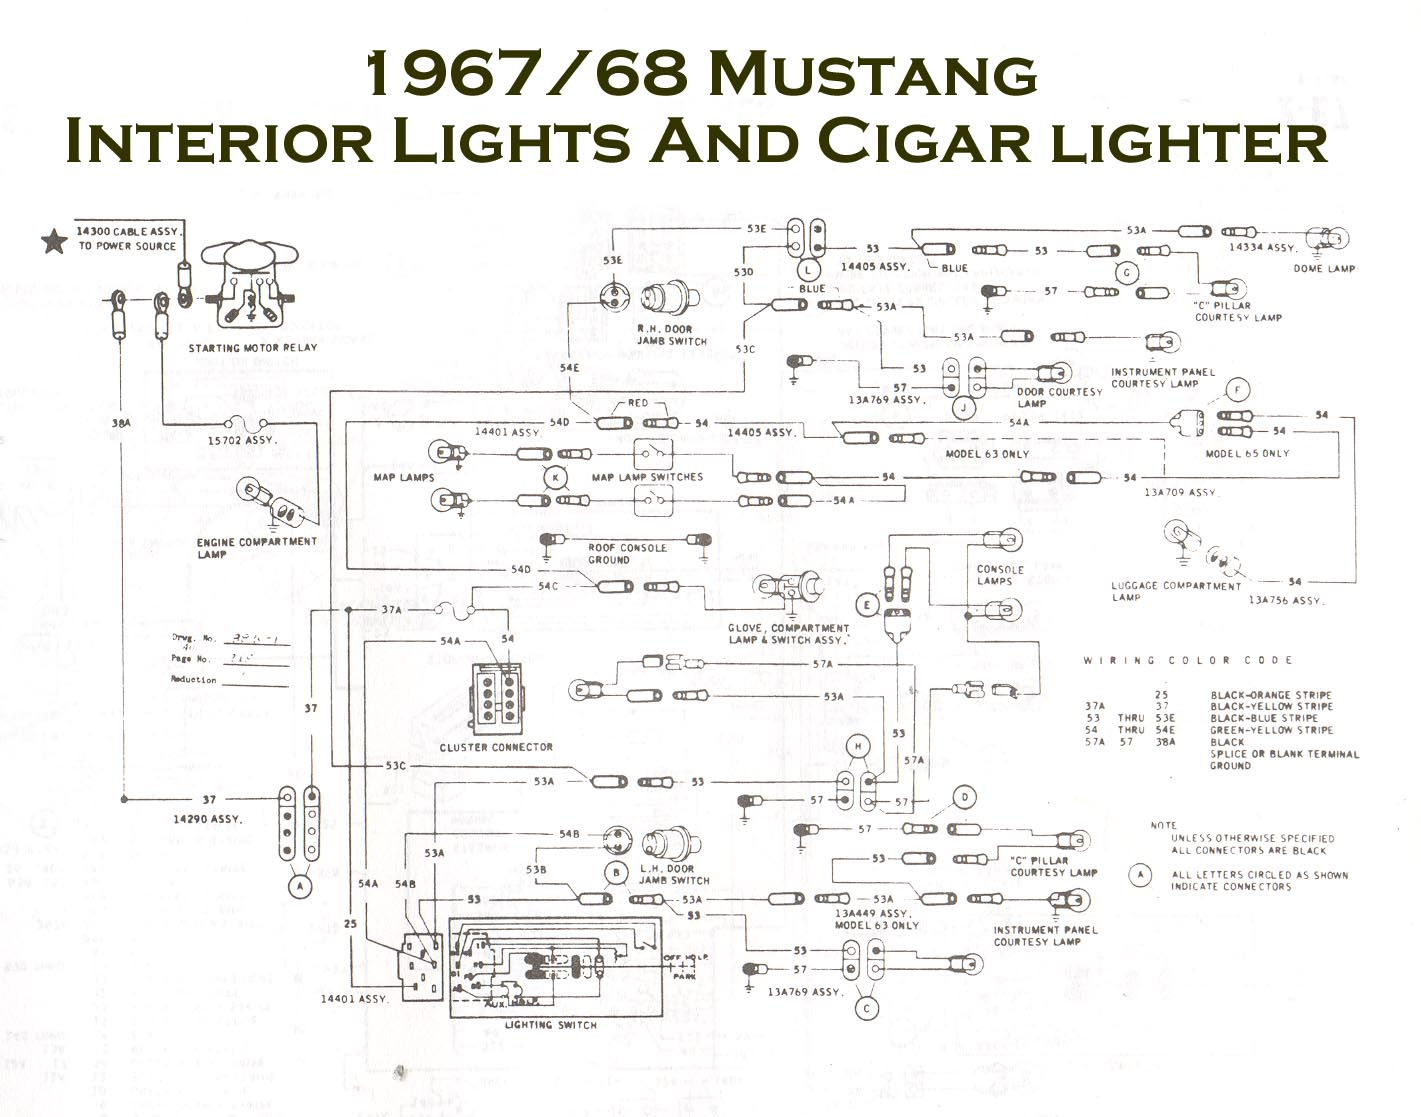 dash wiring diagram 1968 archive of automotive wiring diagram \u2022 68 camaro fuel gauge diagram vintage mustang wiring diagrams rh midlife66 com 1968 mustang dash wiring diagram